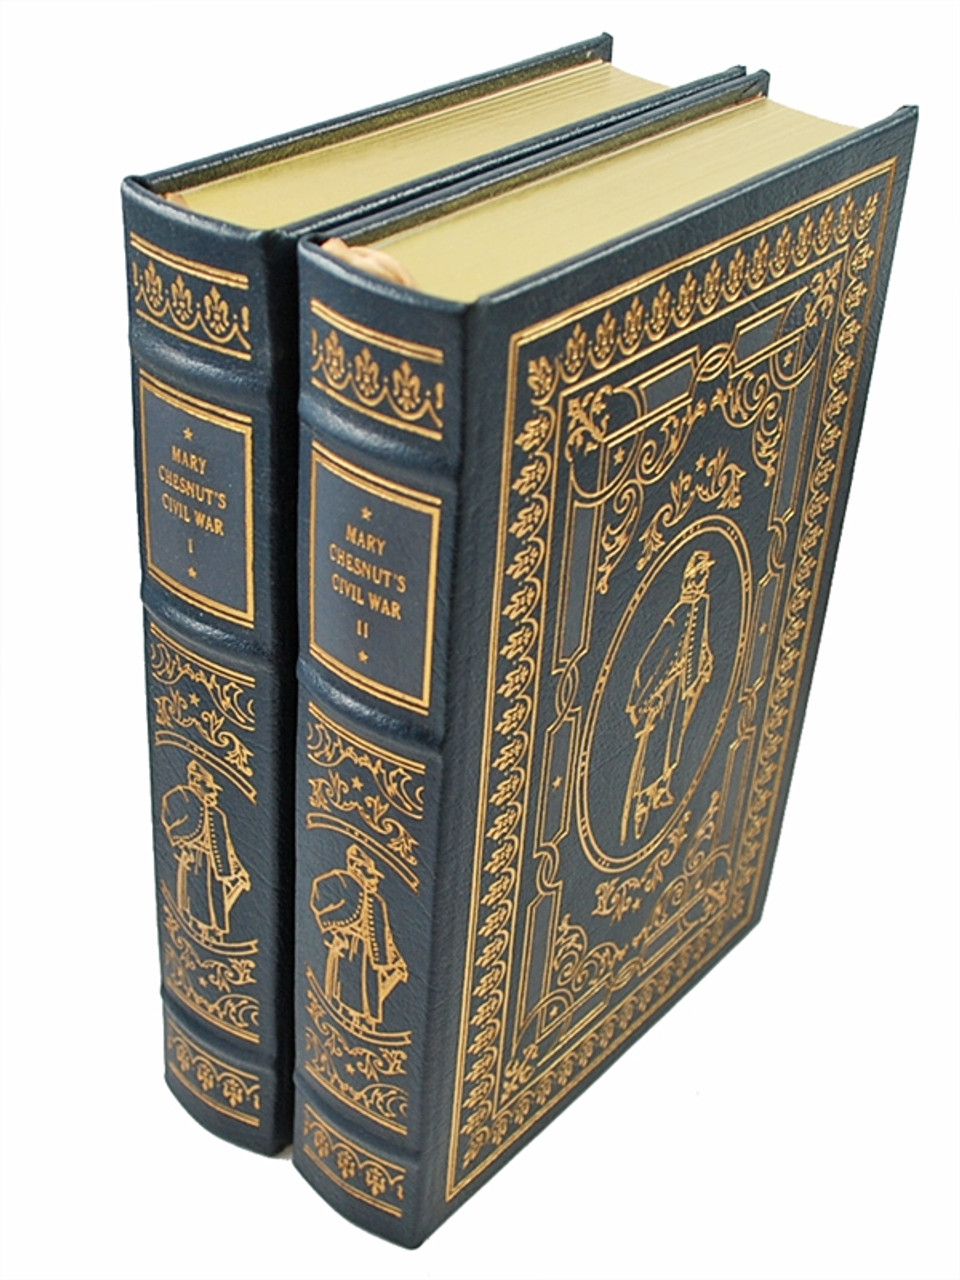 """Easton Press, C. Vann Woodward """"Mary Chesnut's Civil War"""" Leather Bound Collector's Edition, Two Vol. Complete Matched Set"""